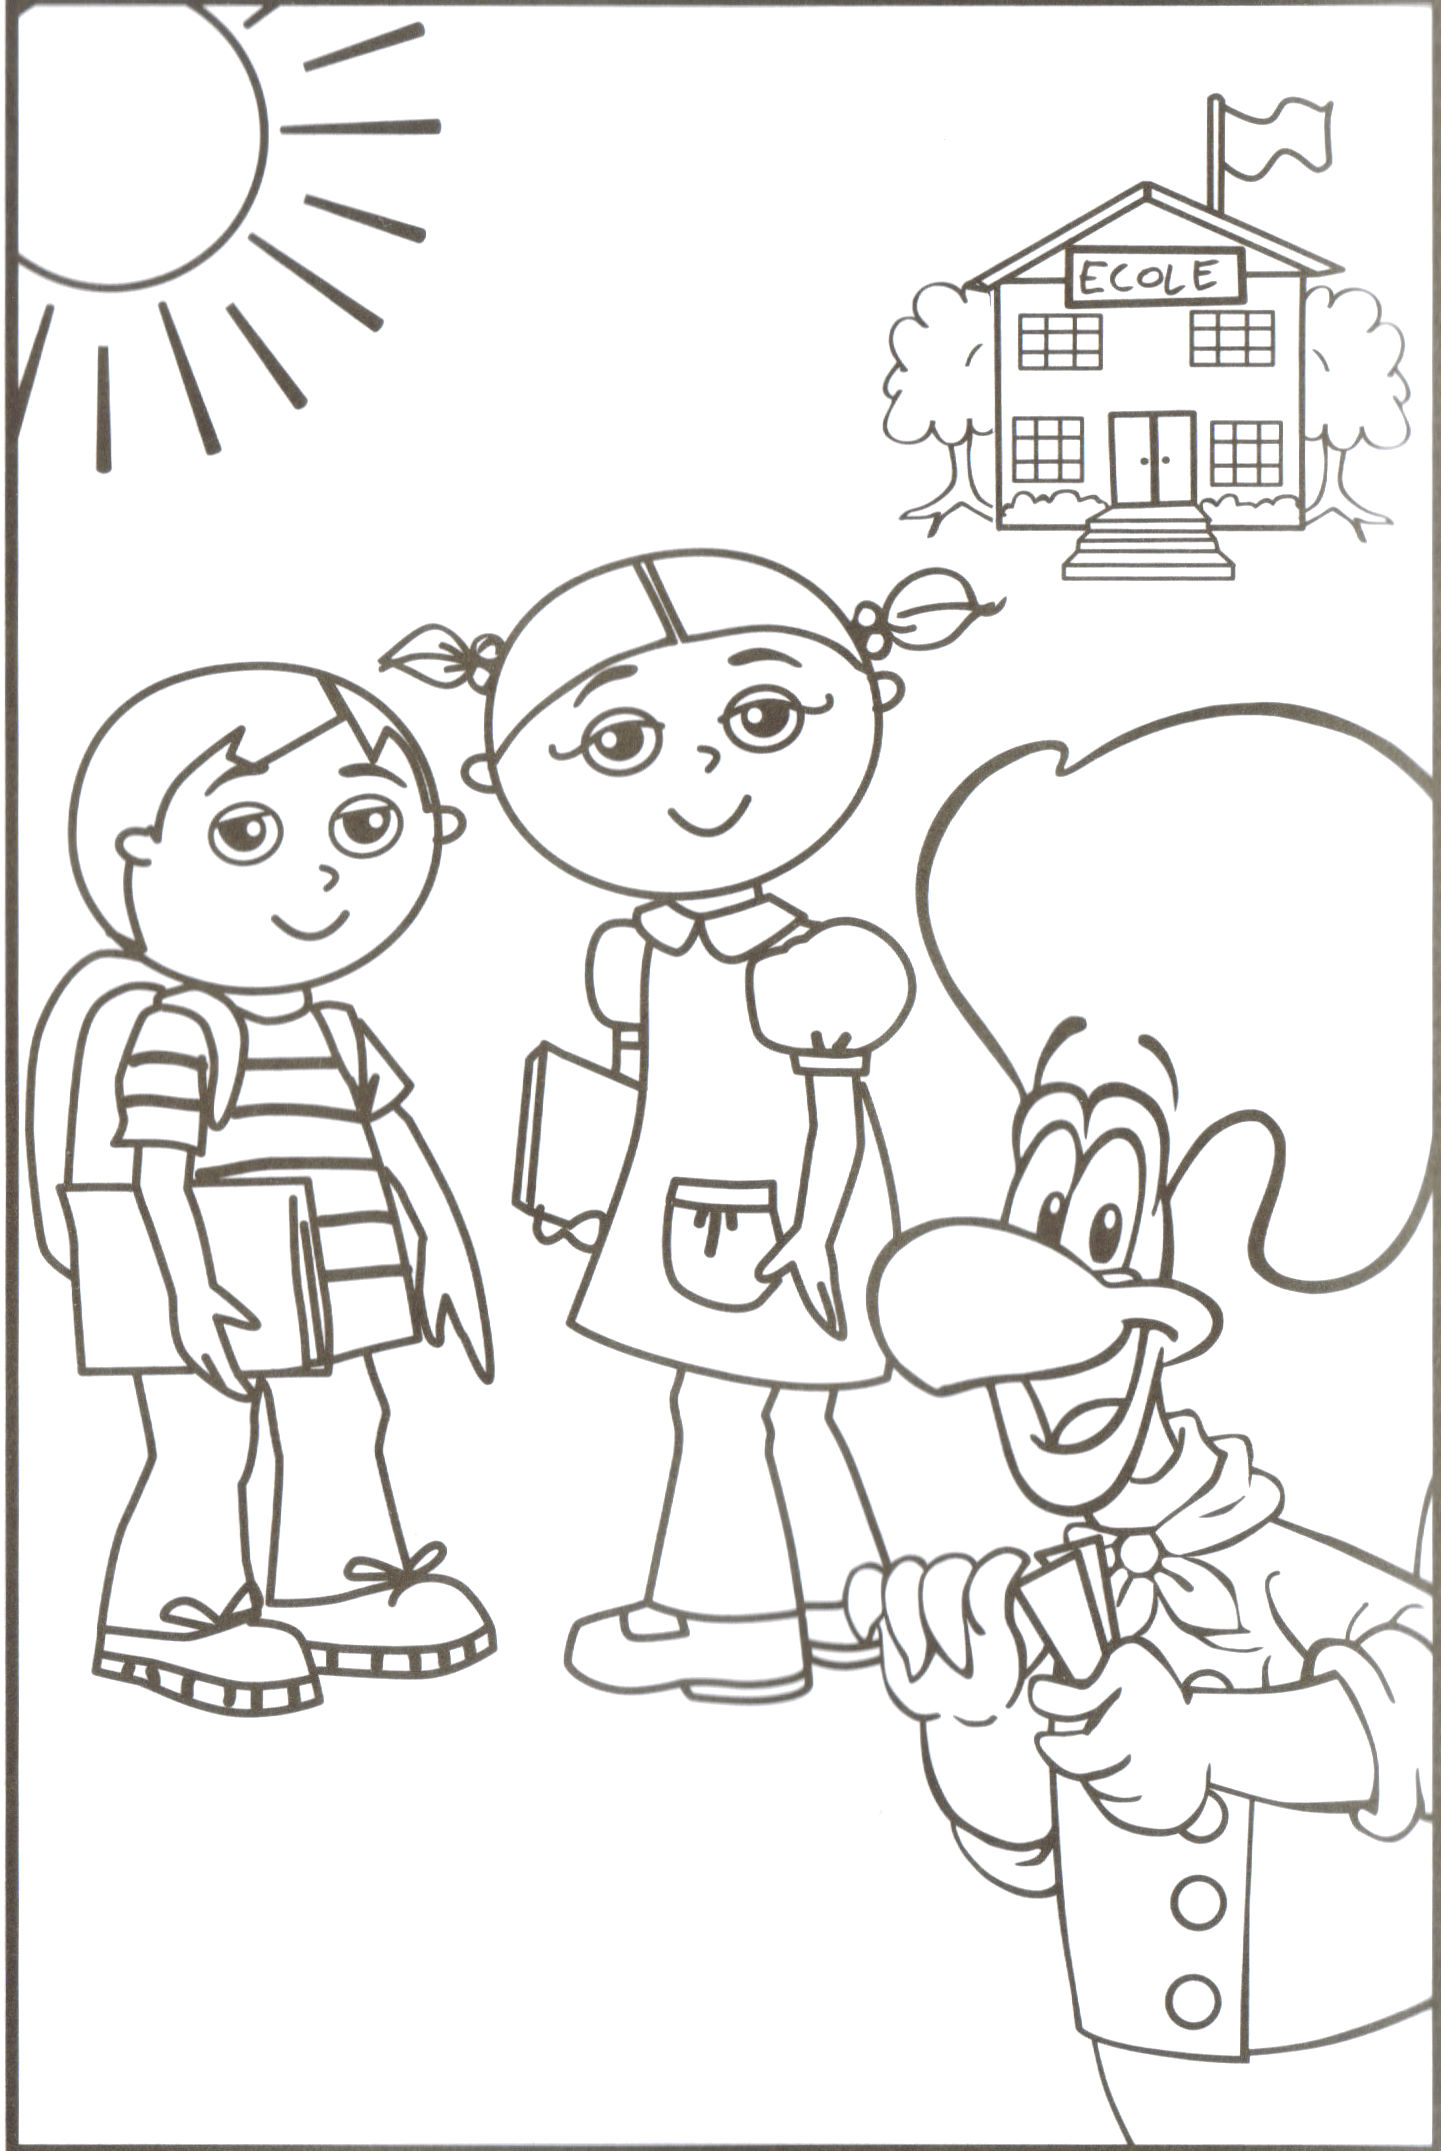 Say No To Drugs Coloring Pages At Getcolorings